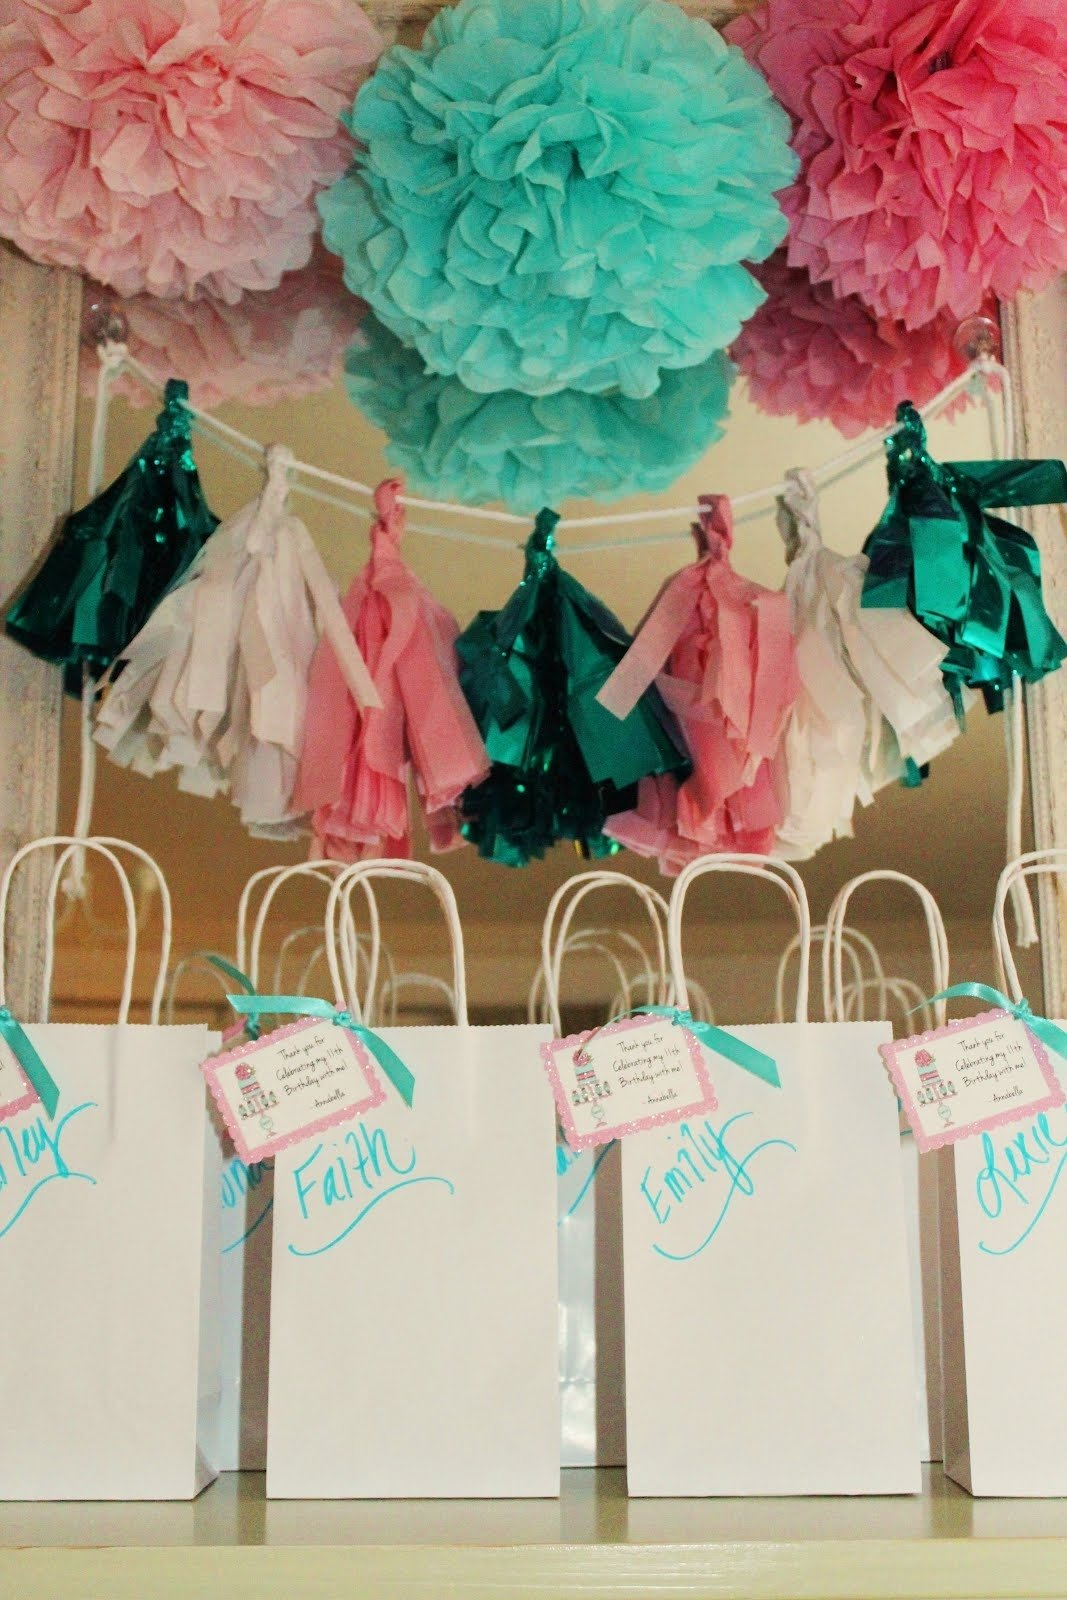 10 Lovely Birthday Party Ideas For 3 Yr Old Girl icing designs sweet sleepover 11th birthday party 4 2020